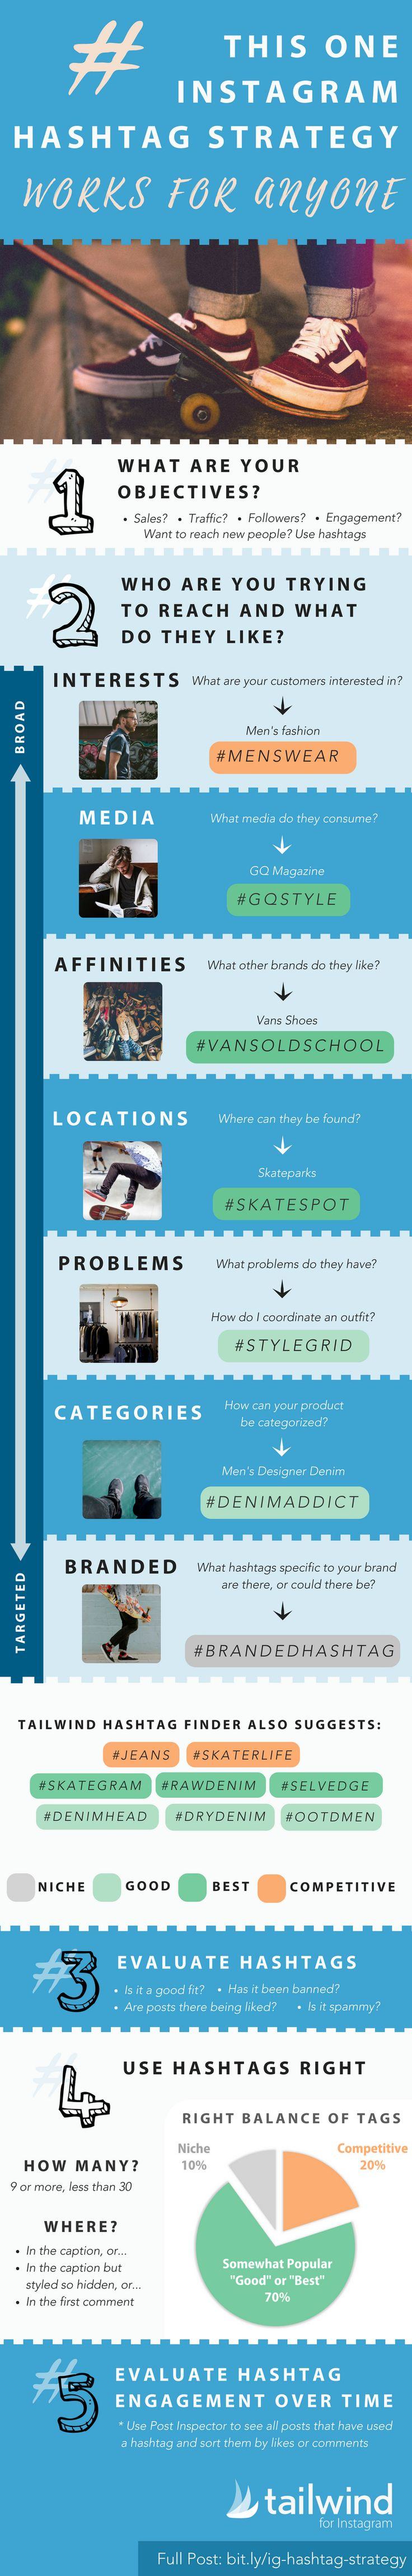 This infographic takes you through 5 simple steps to create an Instagram hashtag strategy